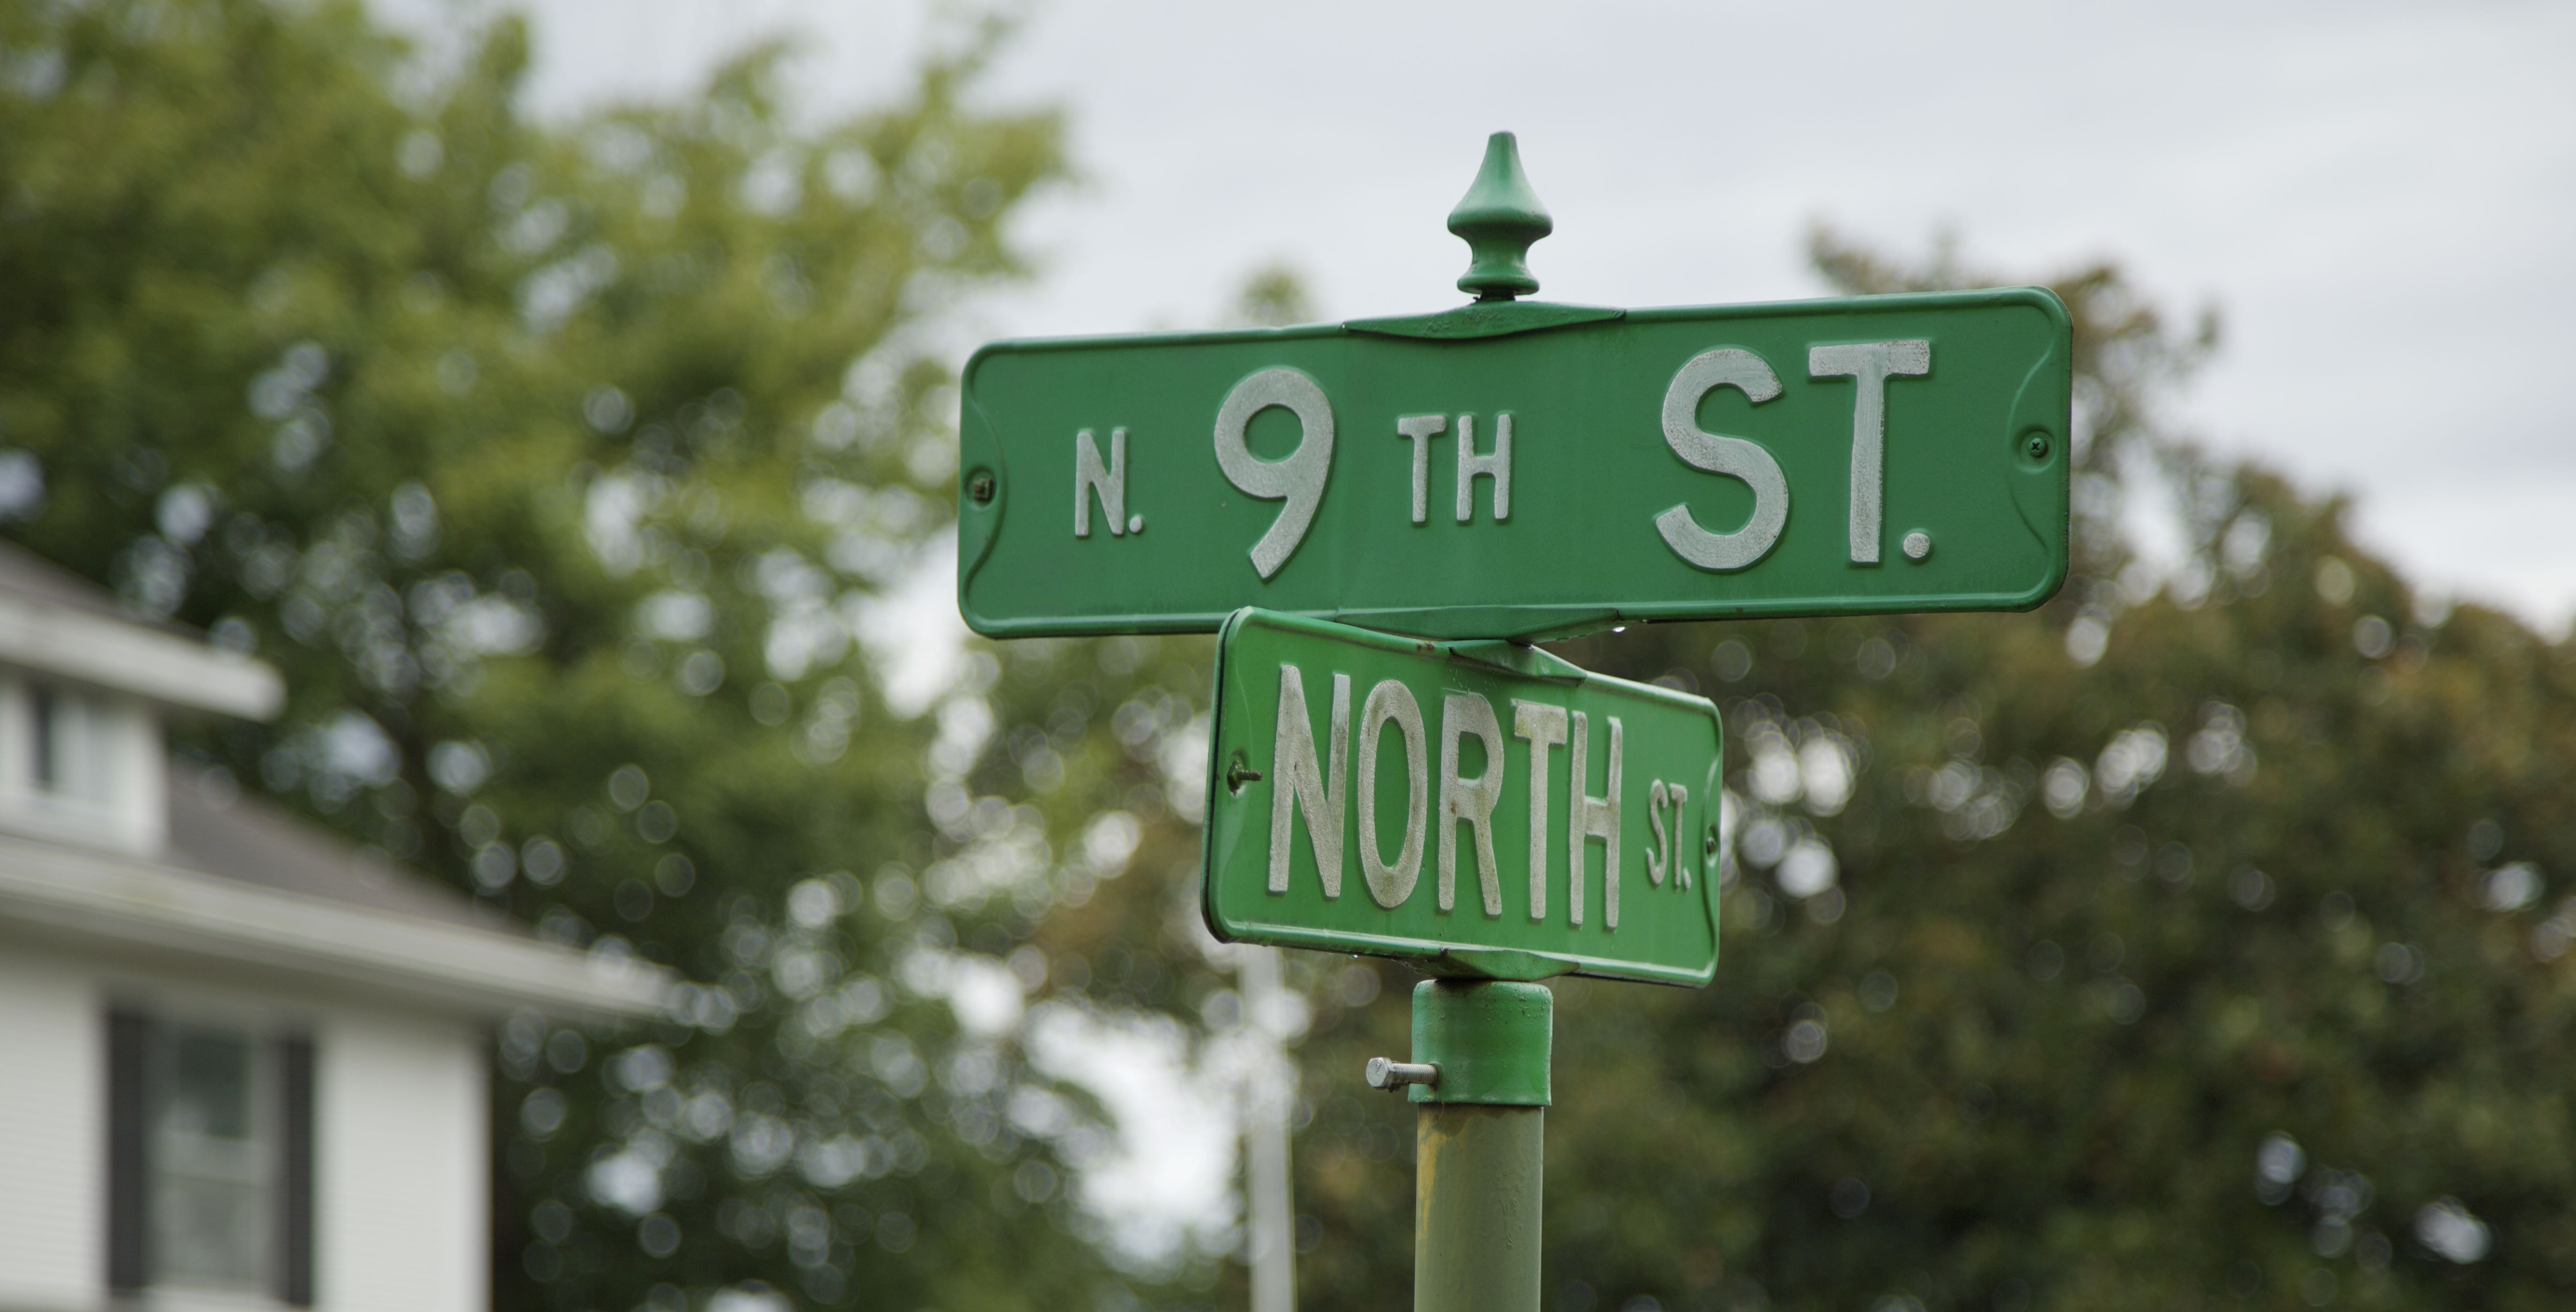 Street Signs for 9th street and North Ave